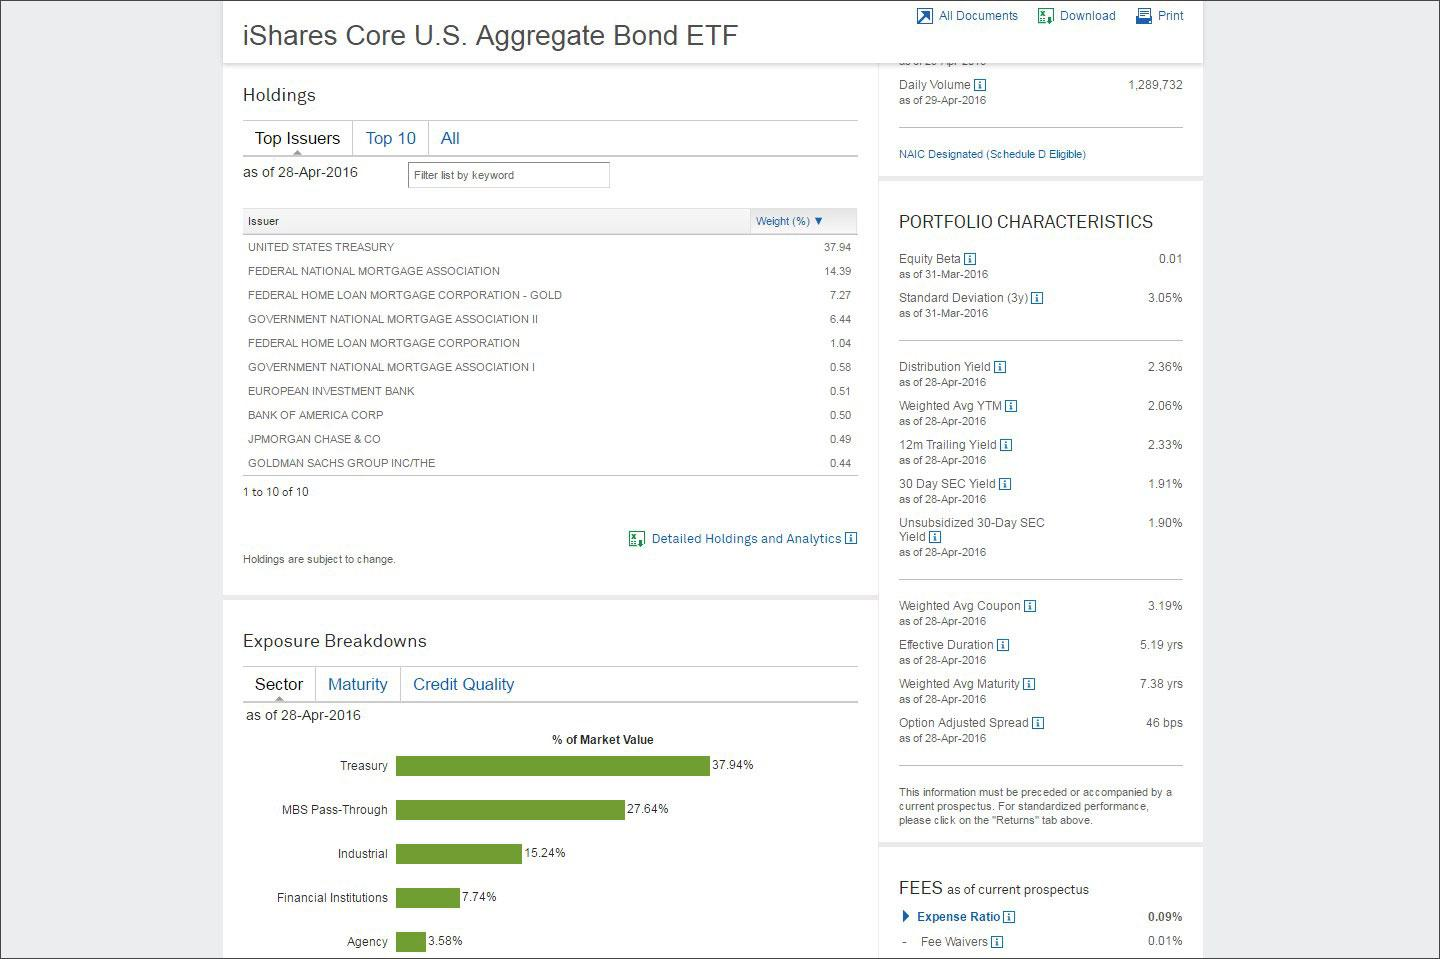 iShares_Core_Agg_Bonds_2